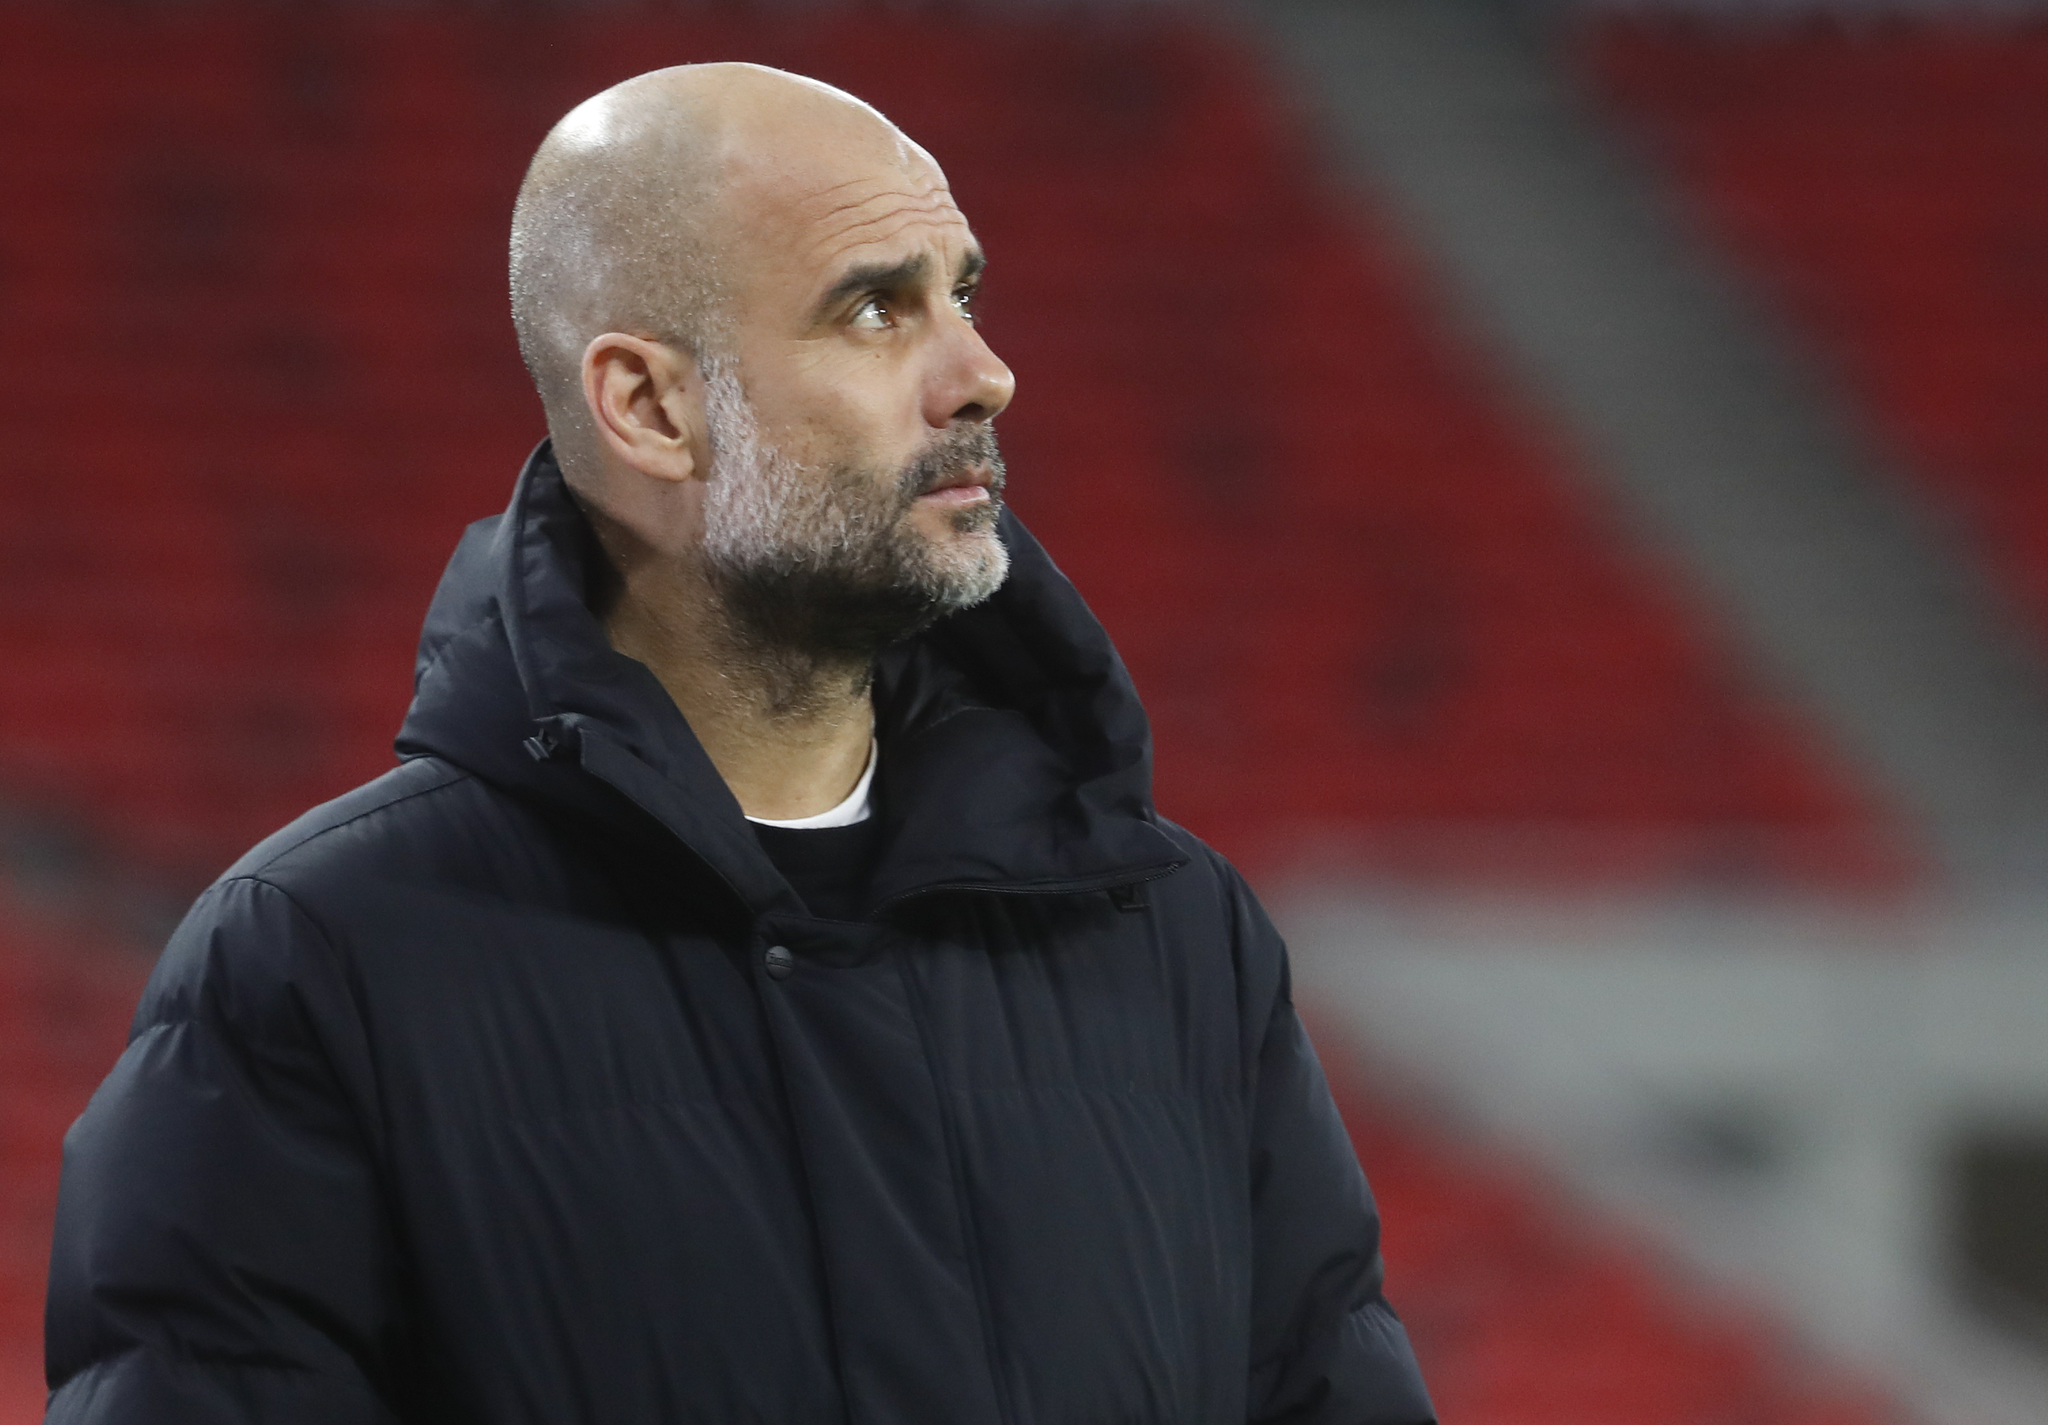 Manchester City's head coach Pep lt;HIT gt;Guardiola lt;/HIT gt; ahead of the Champions League round of 16 second leg soccer match between Manchester City and Borussia Moenchengladbach at the Puskas Arena in Budapest, Hungary, Tuesday, March 16, 2021. (AP Photo/Laszlo Balogh)